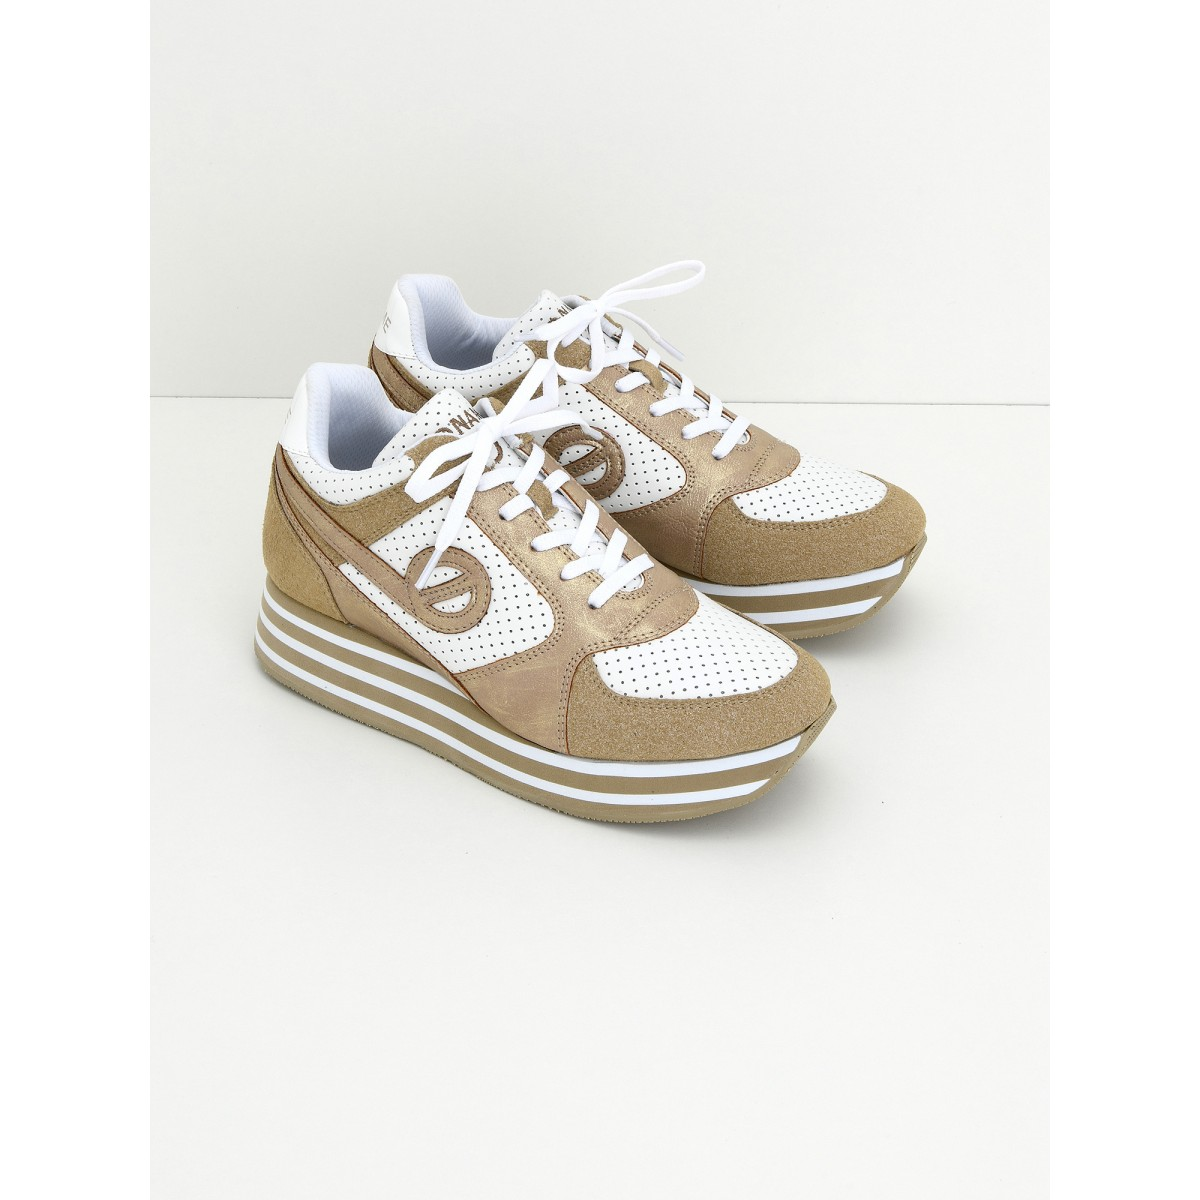 No Name Parko Jogger - Nap.Perfo/Split - White/Sand